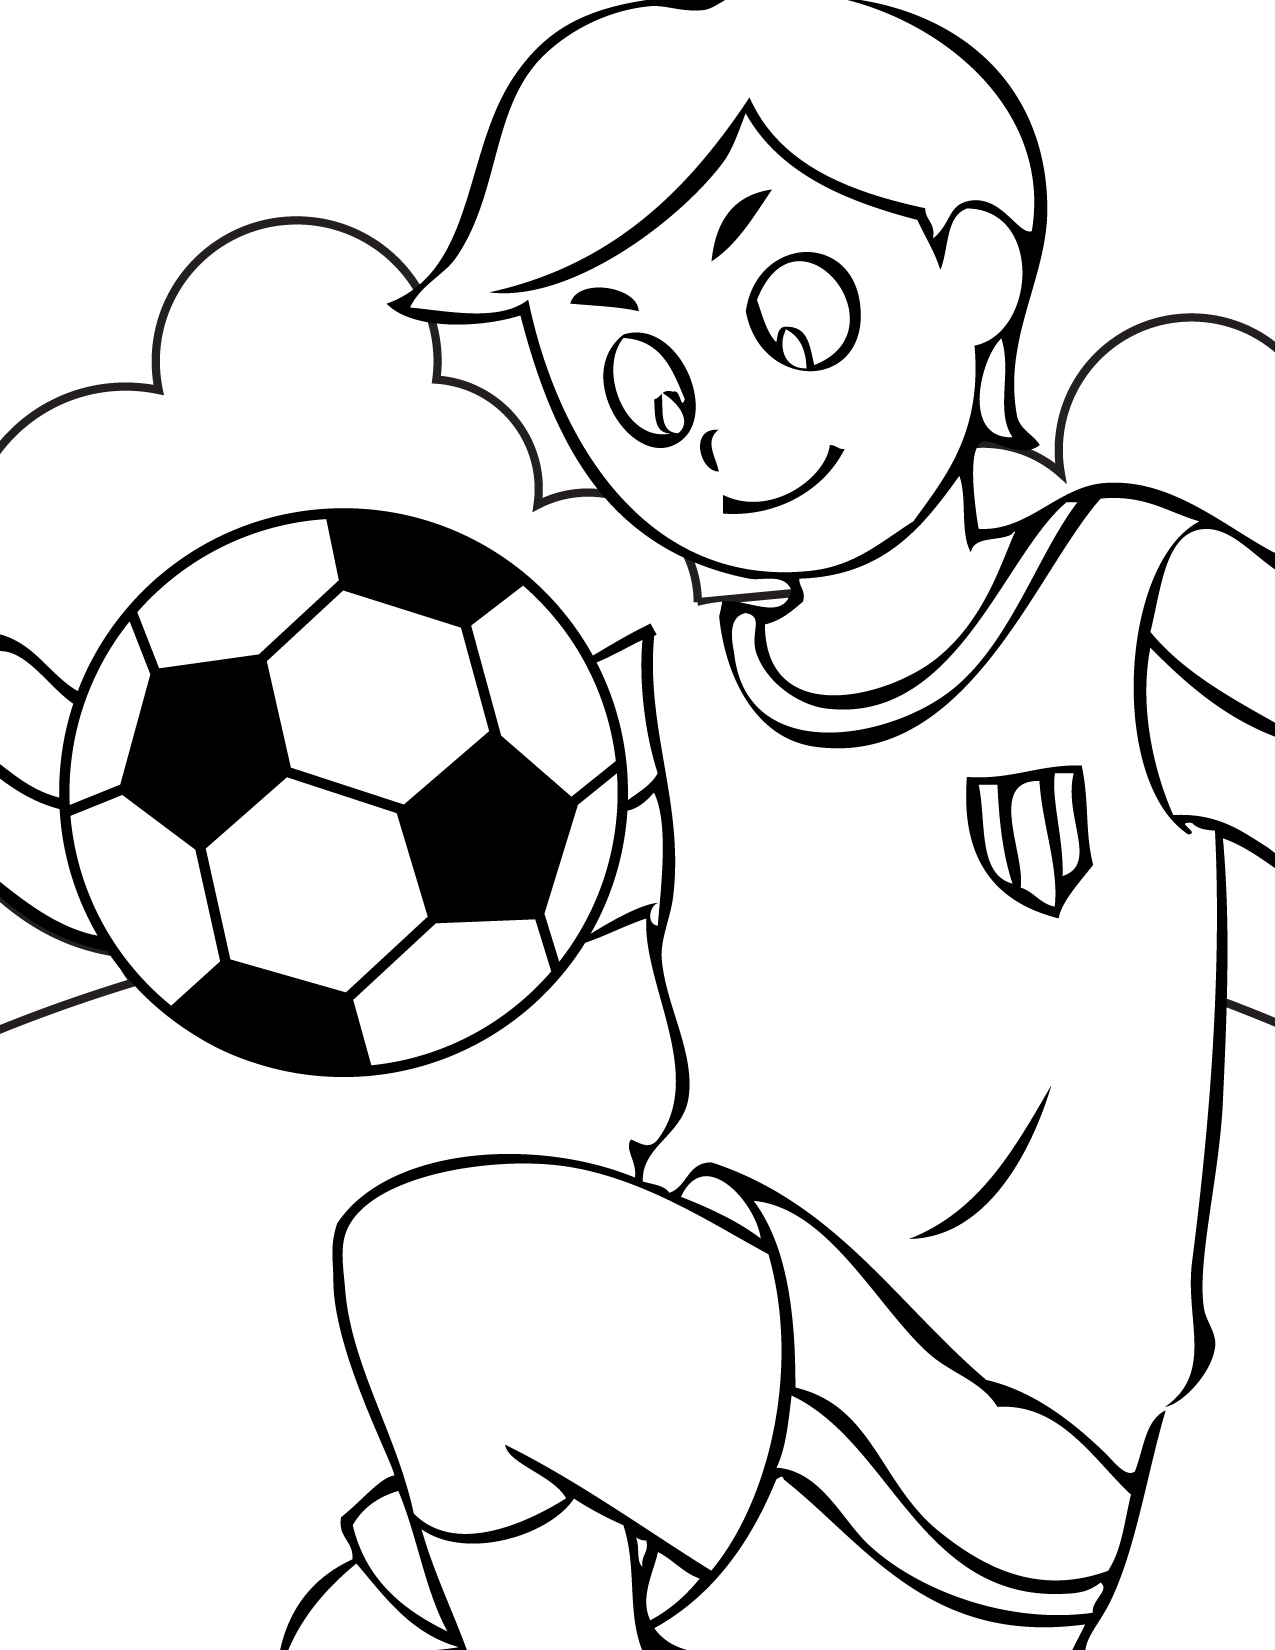 soccer colouring pages free printable soccer coloring pages for kids pages colouring soccer